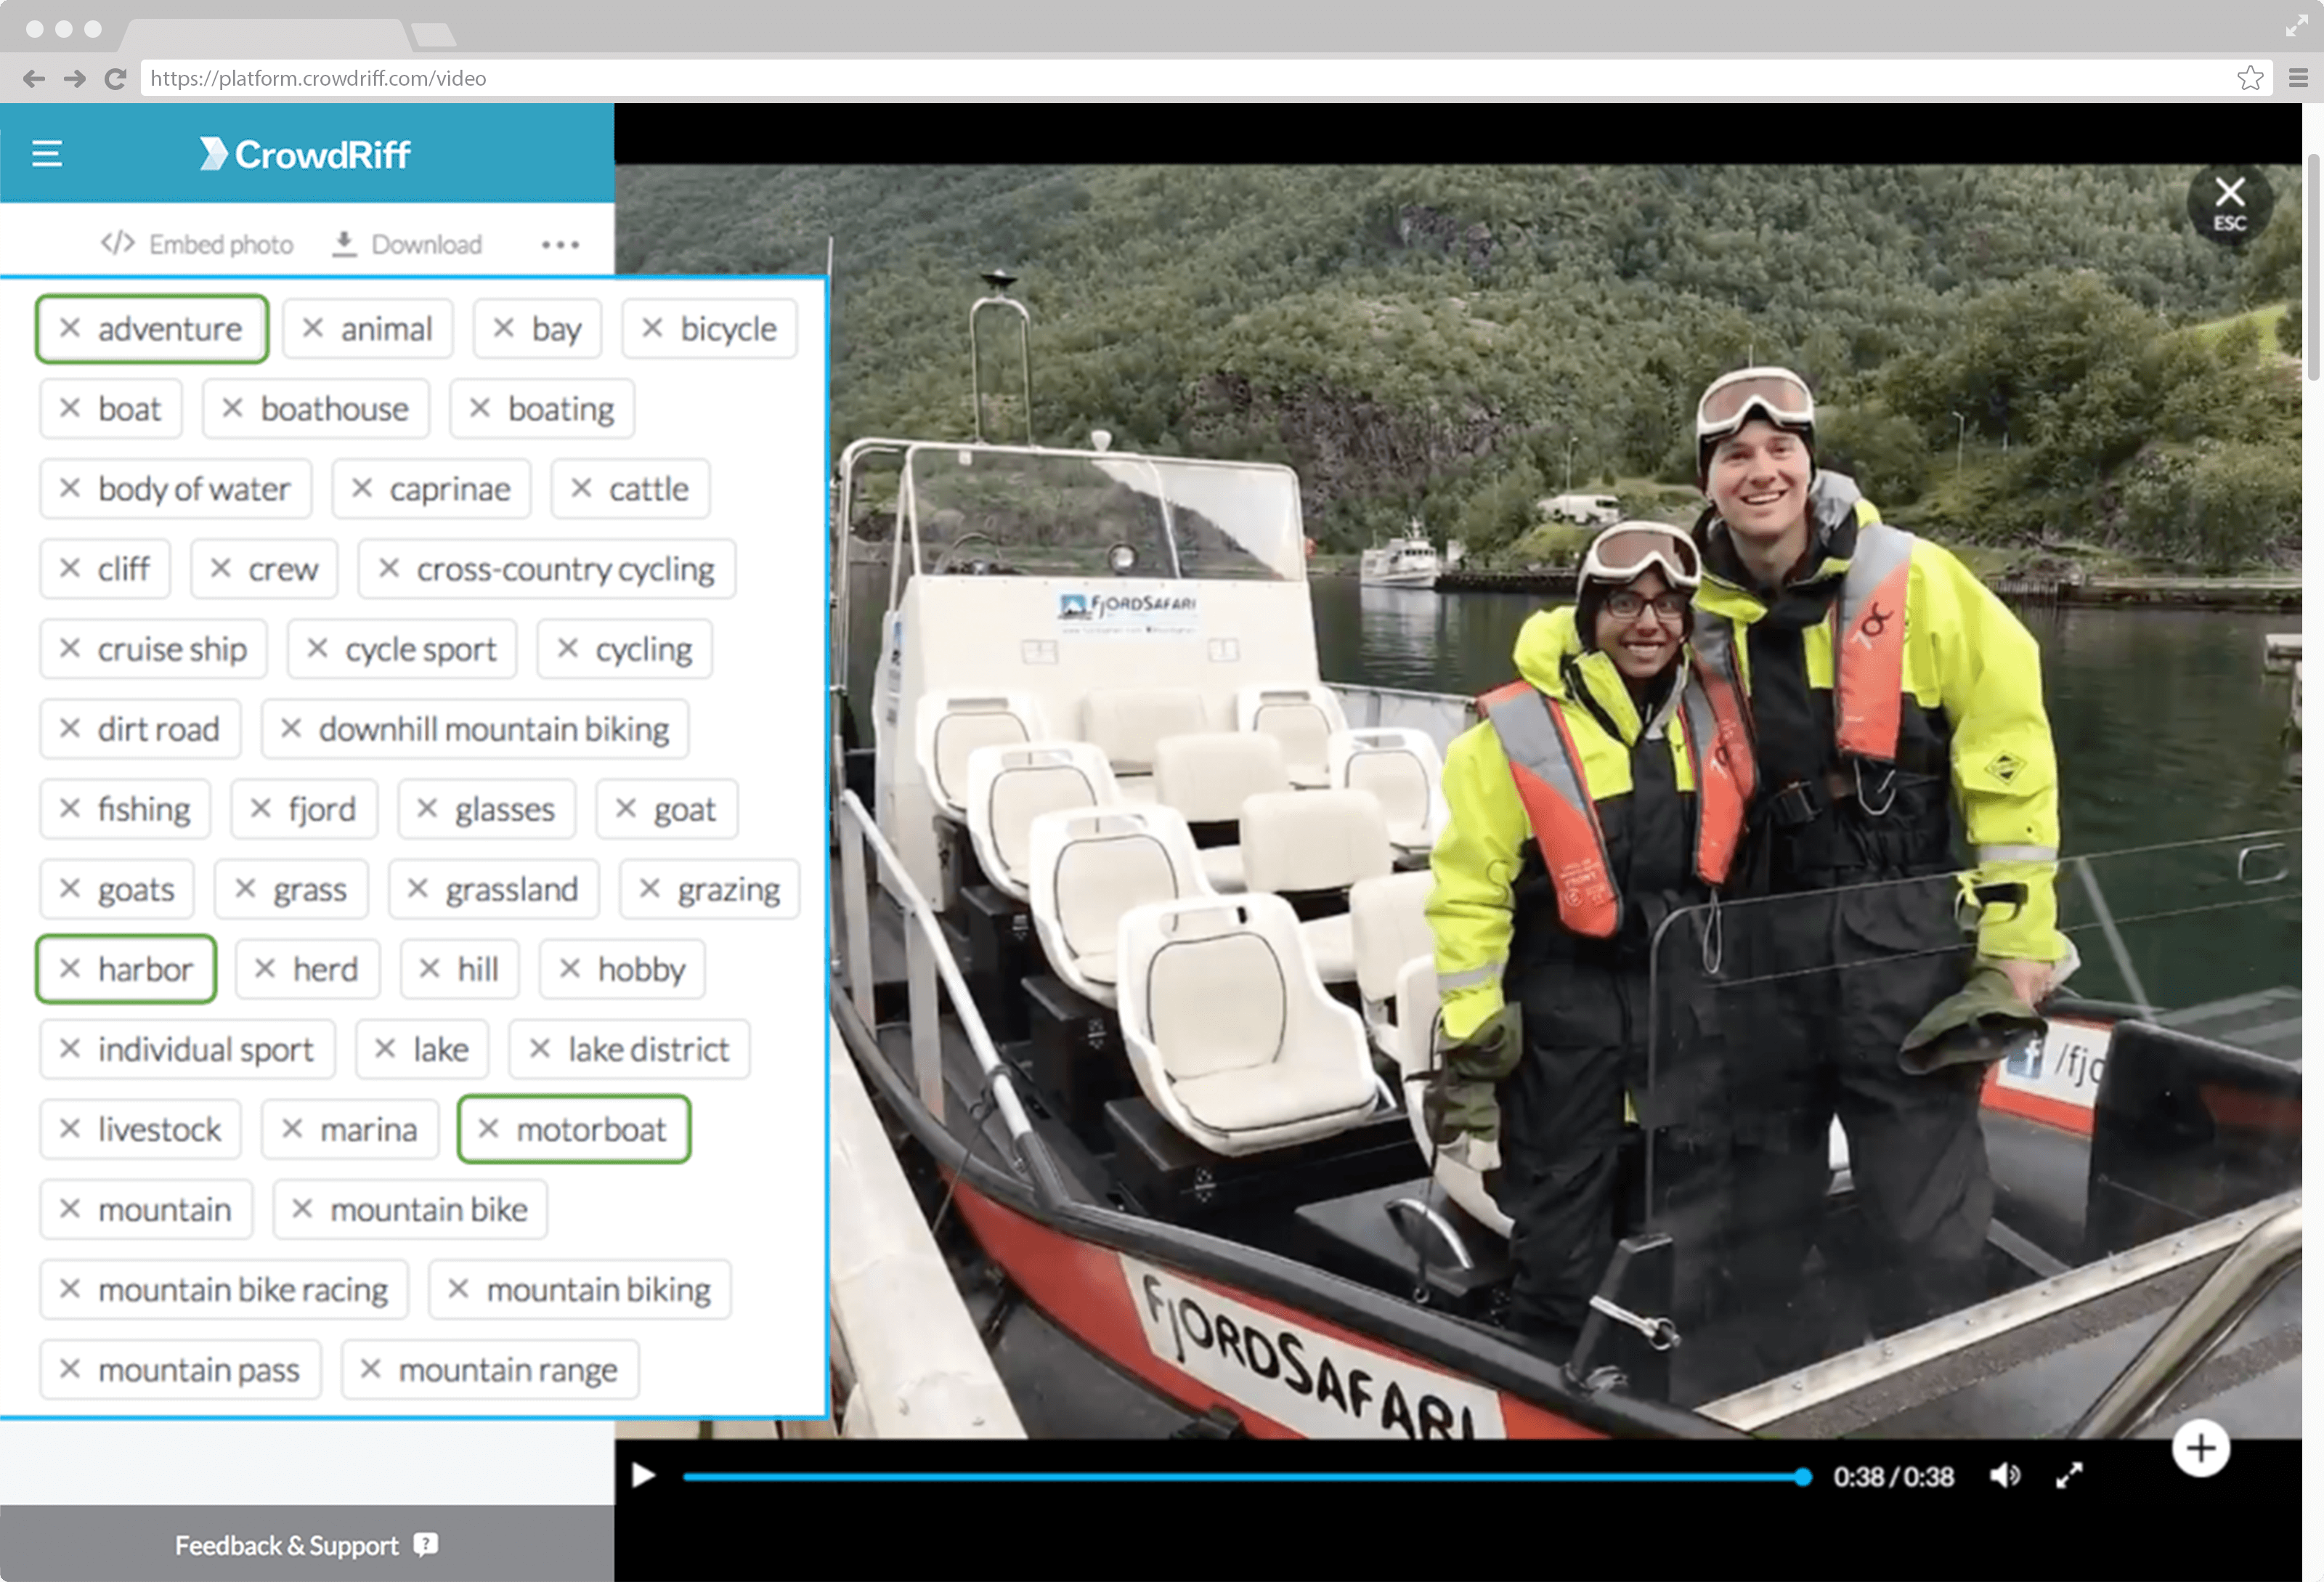 Image of people on a boat, uploaded to CrowdRiff with auto-tagging